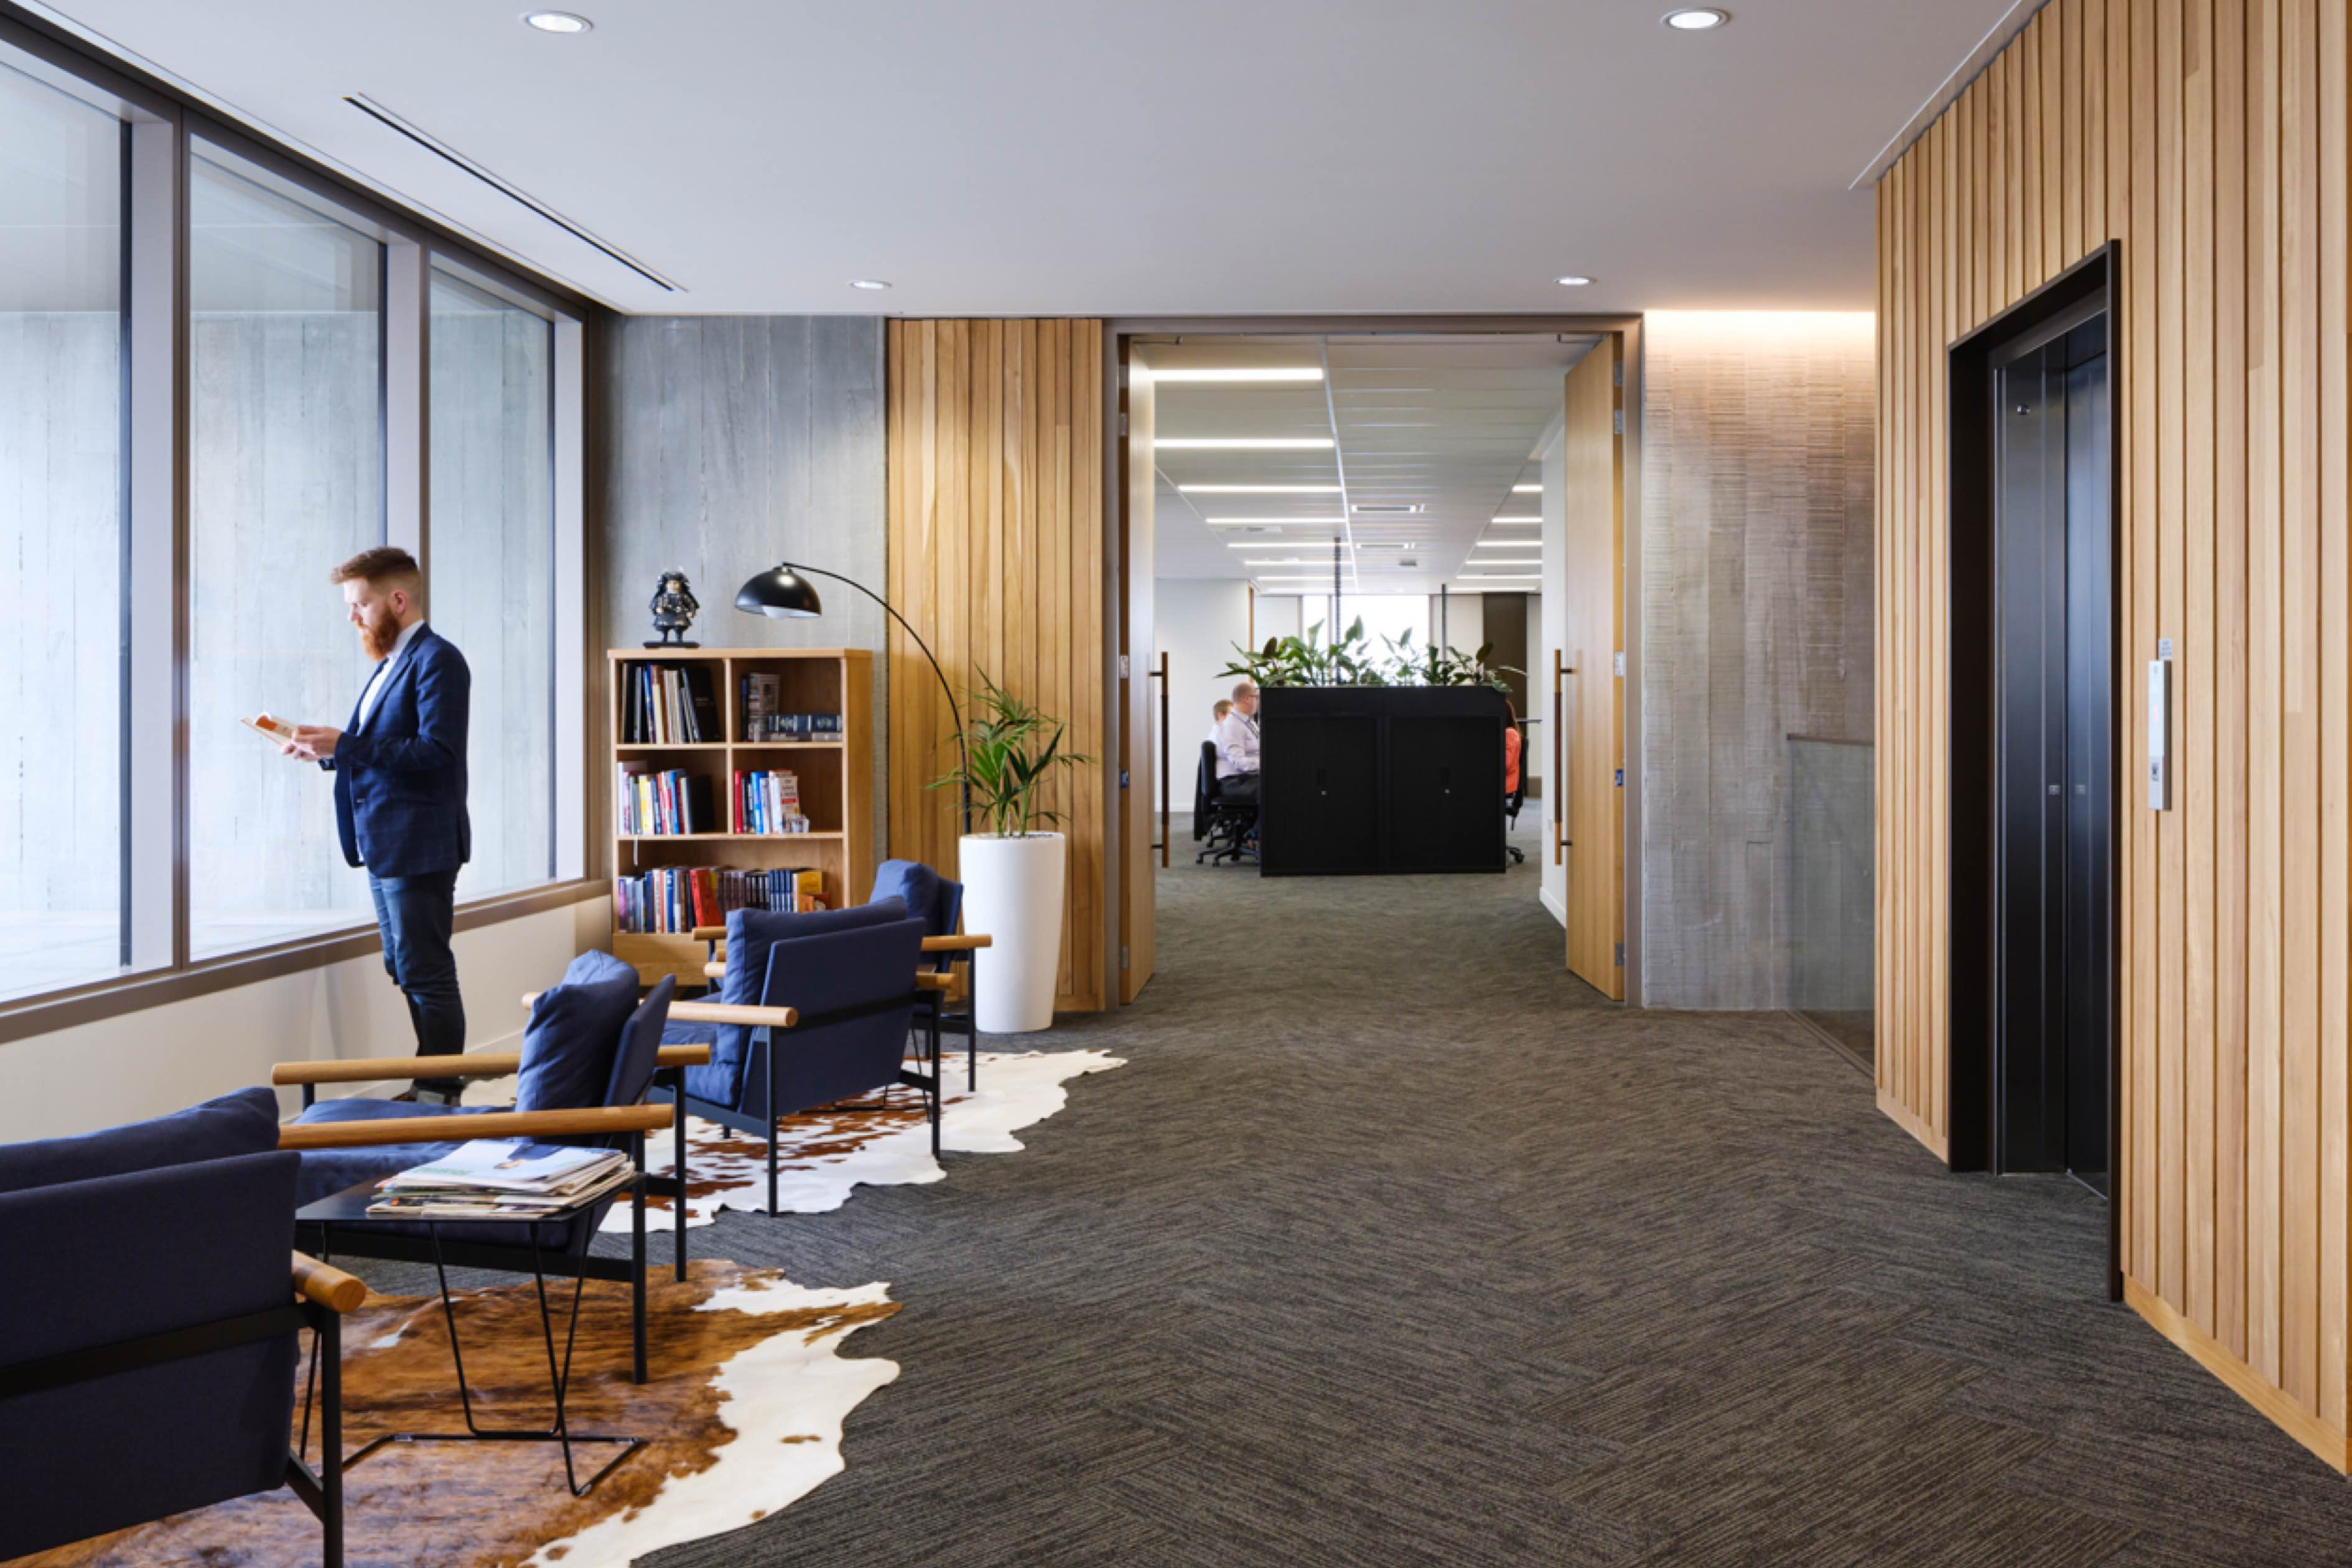 Suited man in waiting area with contemporary office space visible through open doorway